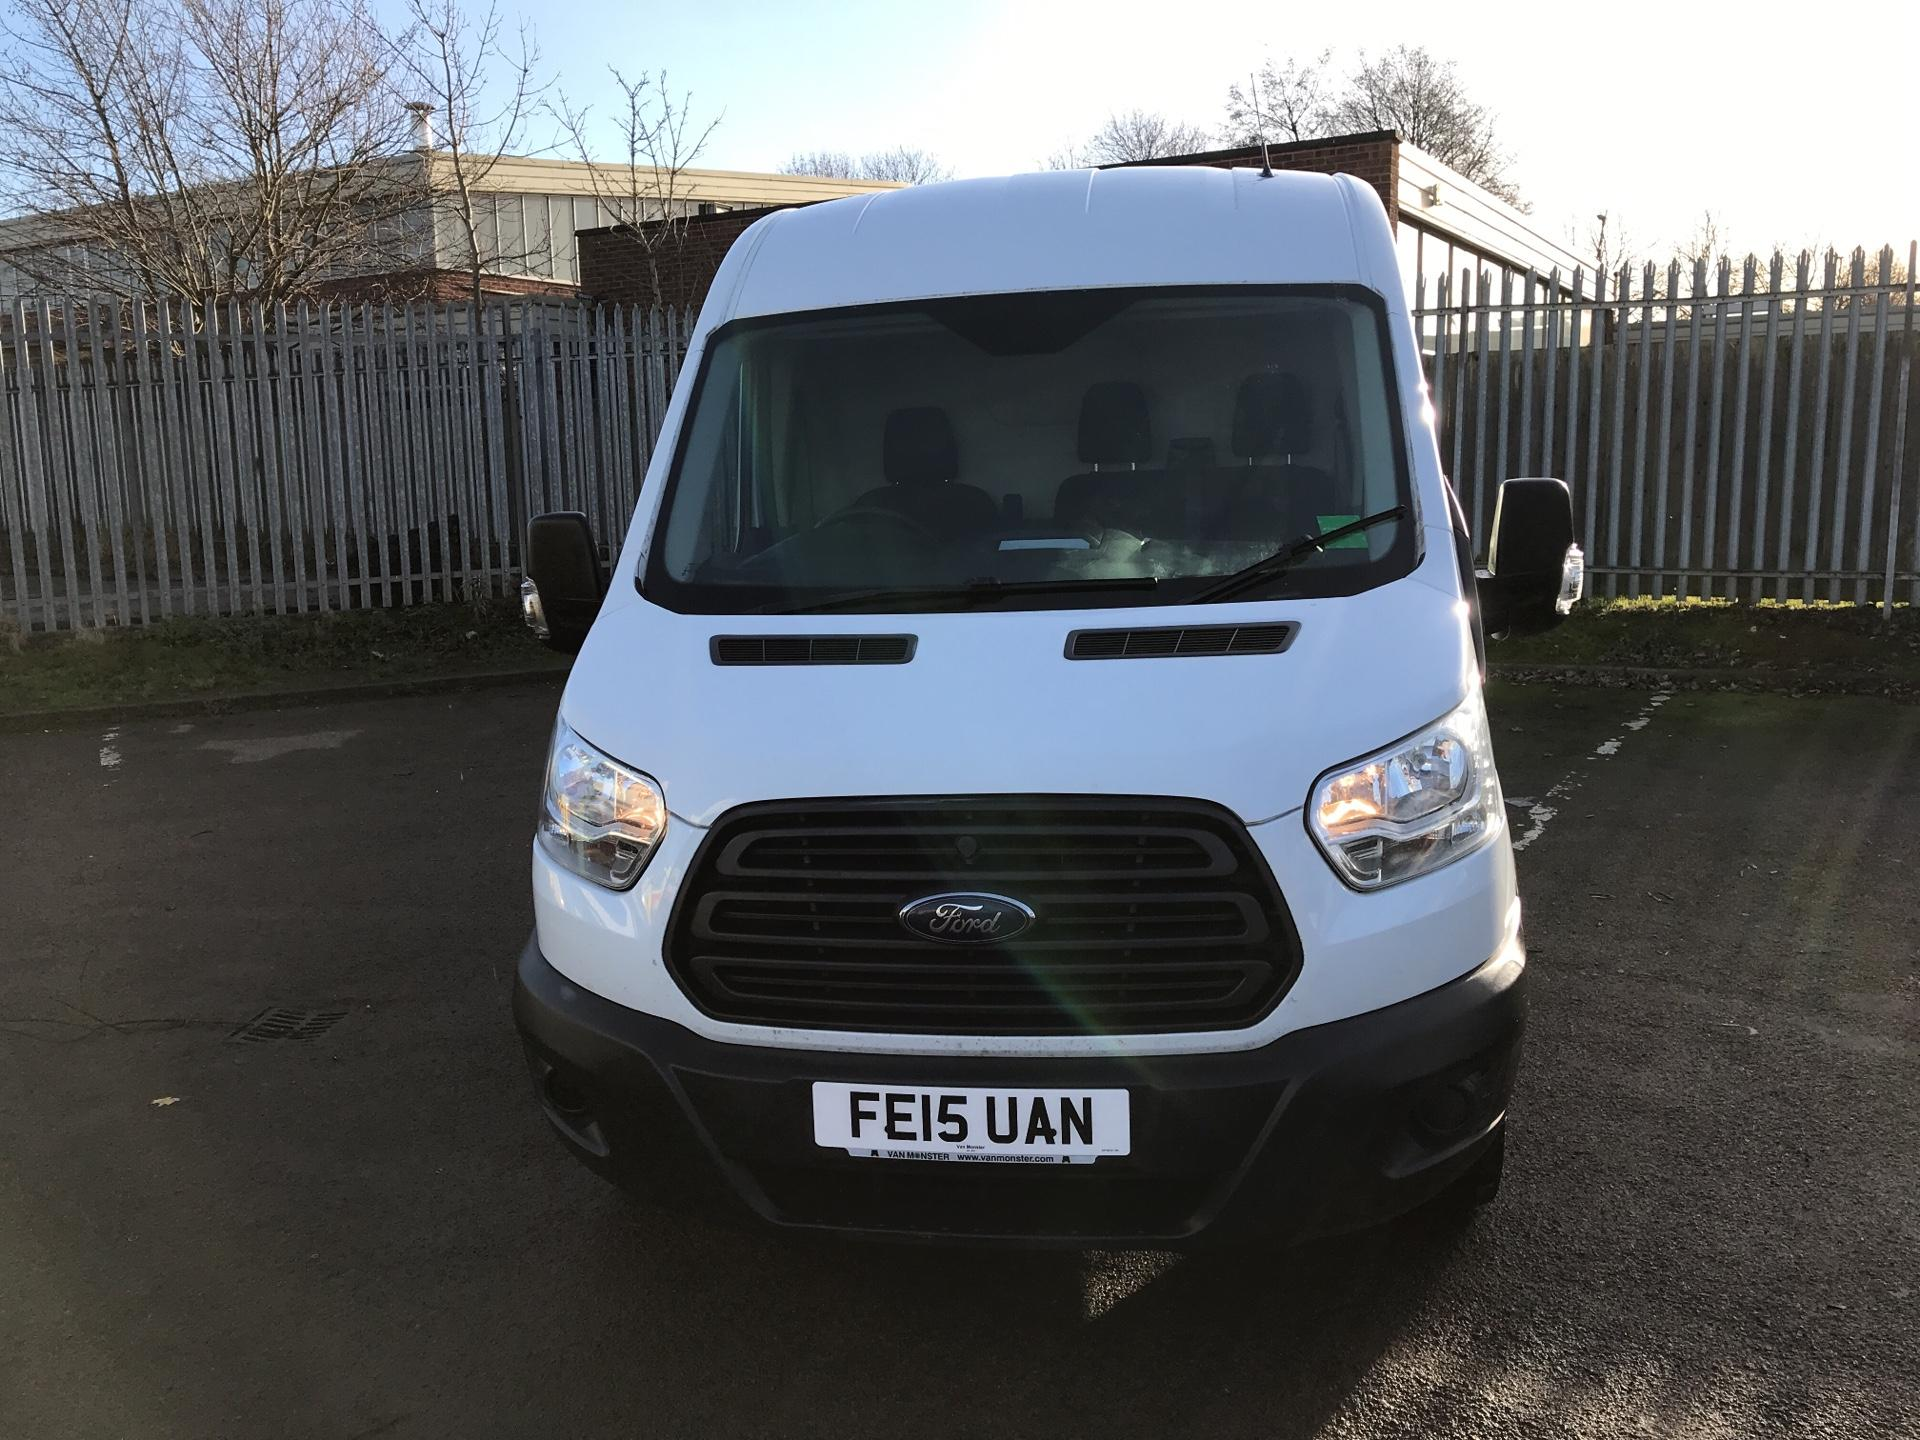 2015 Ford Transit 350 L3 H2 VAN 125PS EURO 5 *VALUE RANGE VEHICLE - CONDITION REFLECTED IN PRICE* (FE15UAN) Image 8